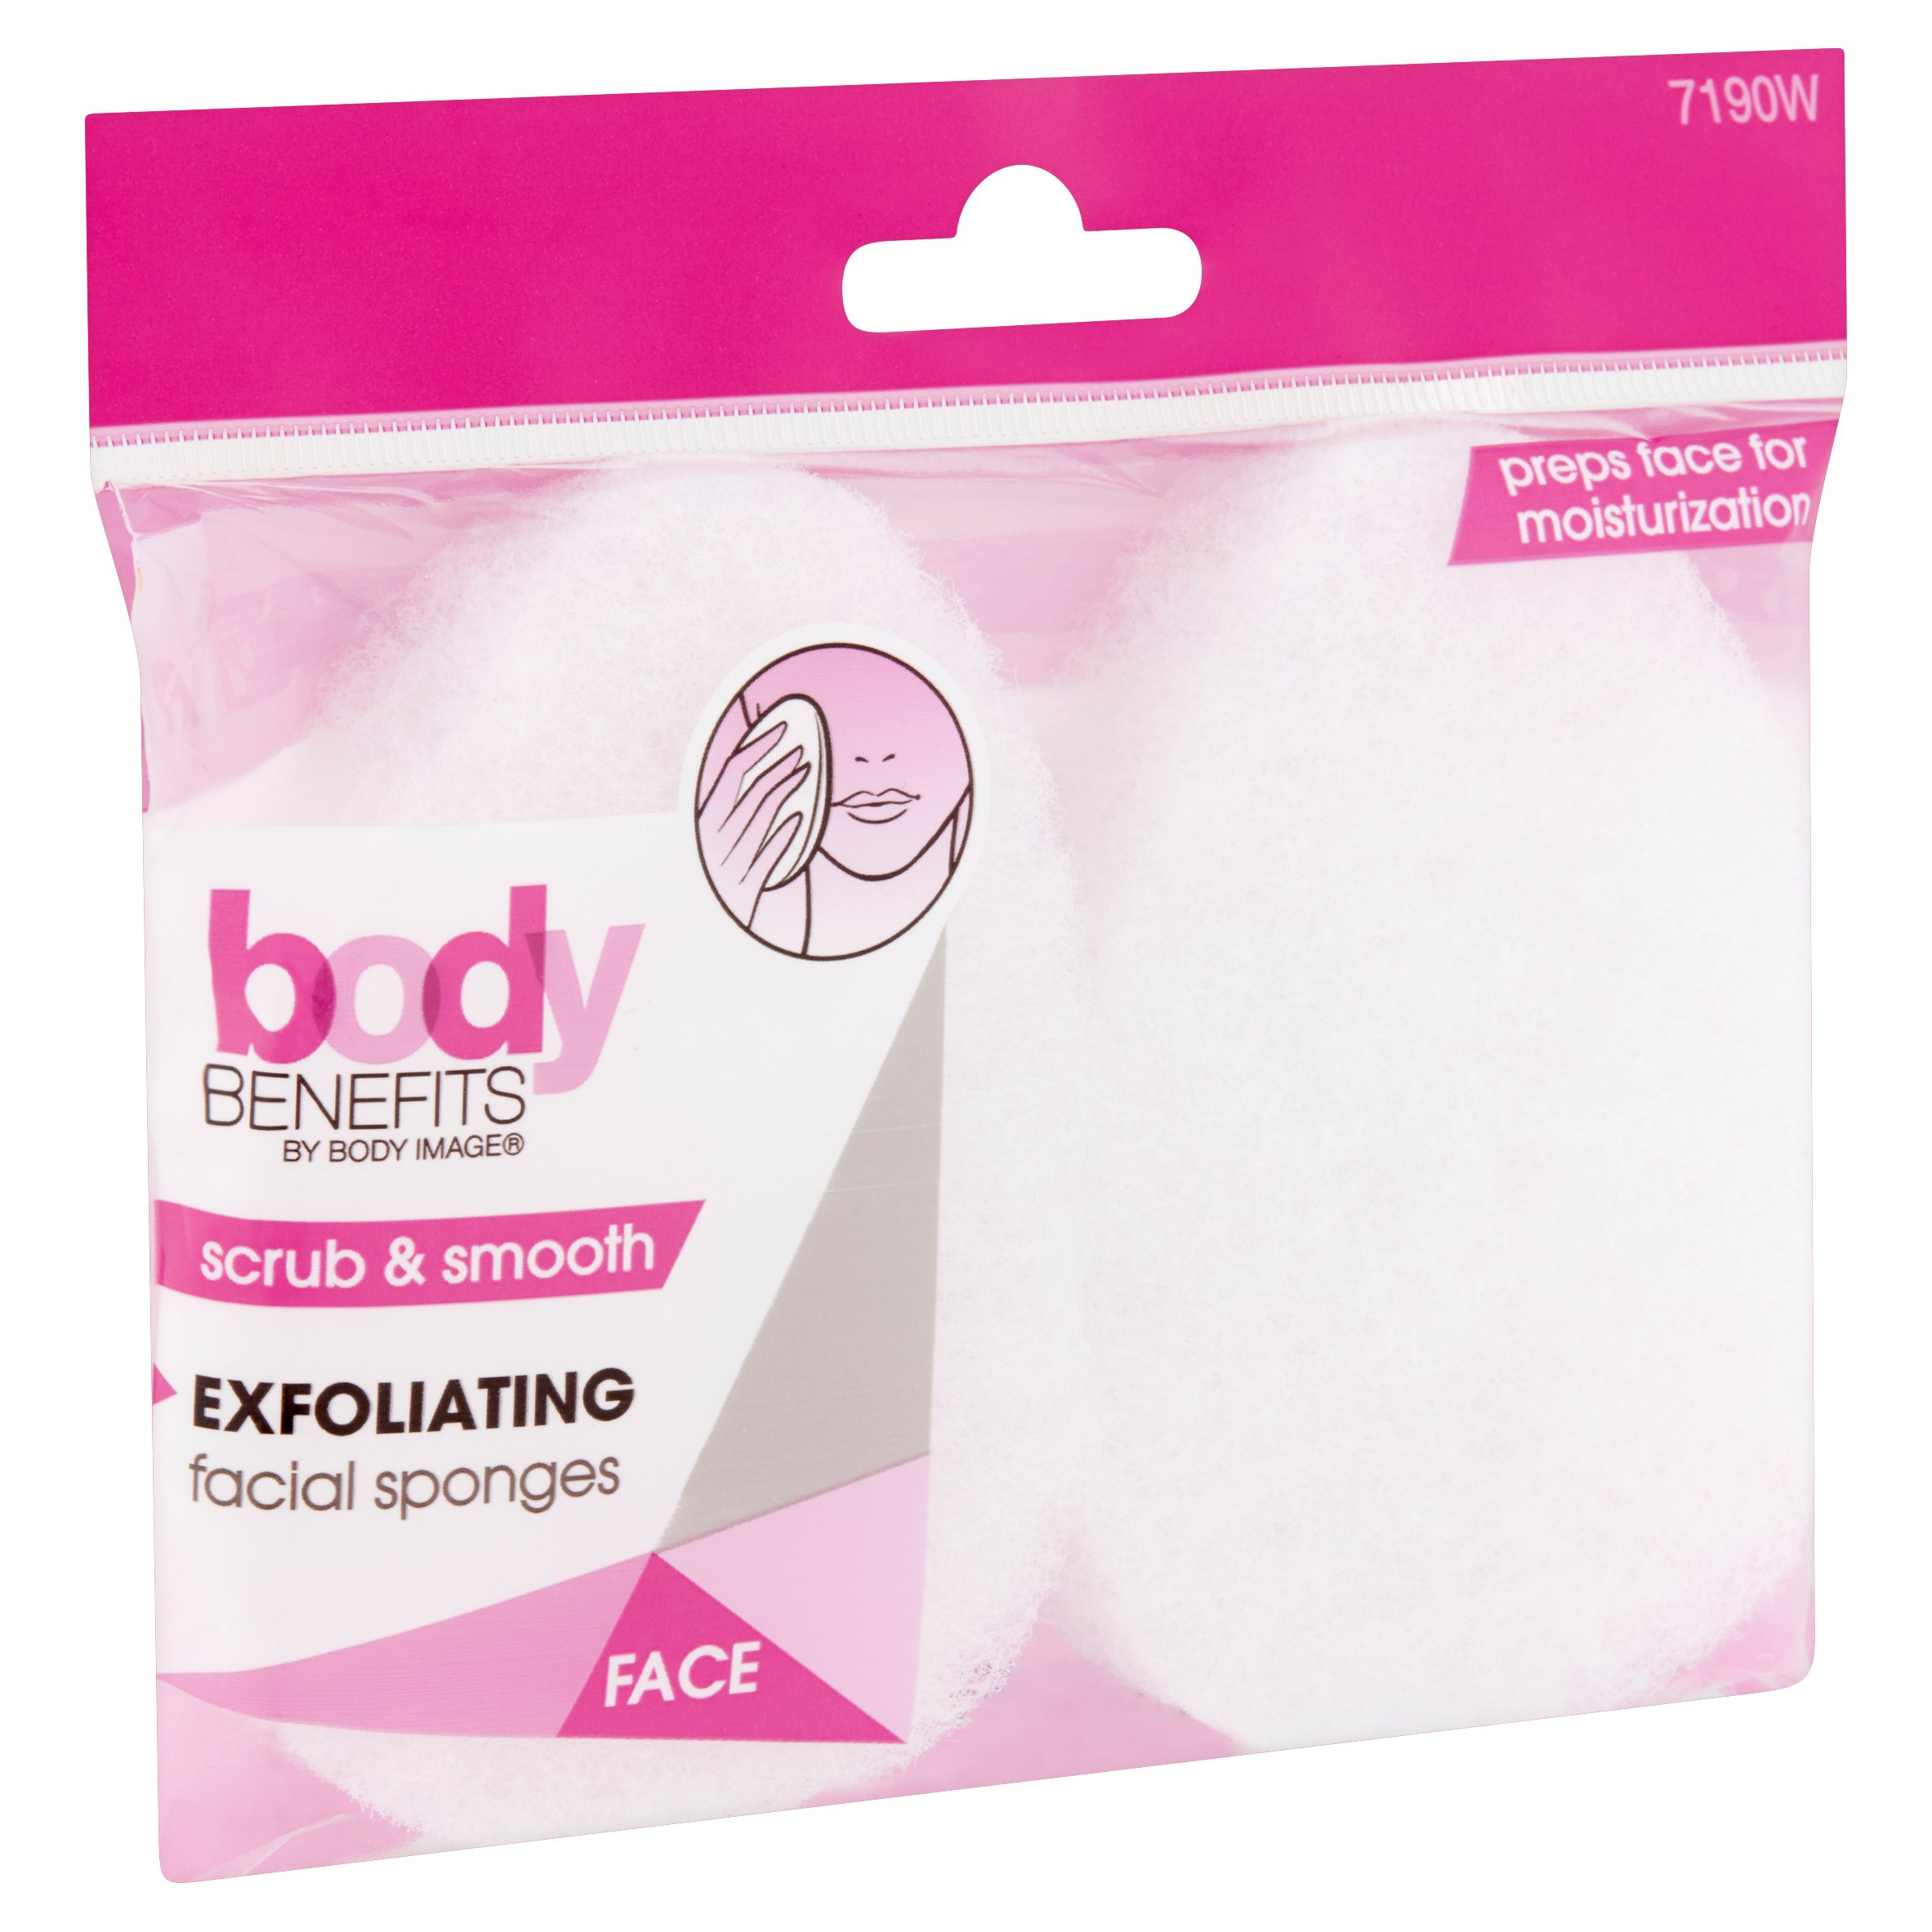 Body Benefits Exfoliating Facial Sponge Walmart Com Walmart Com